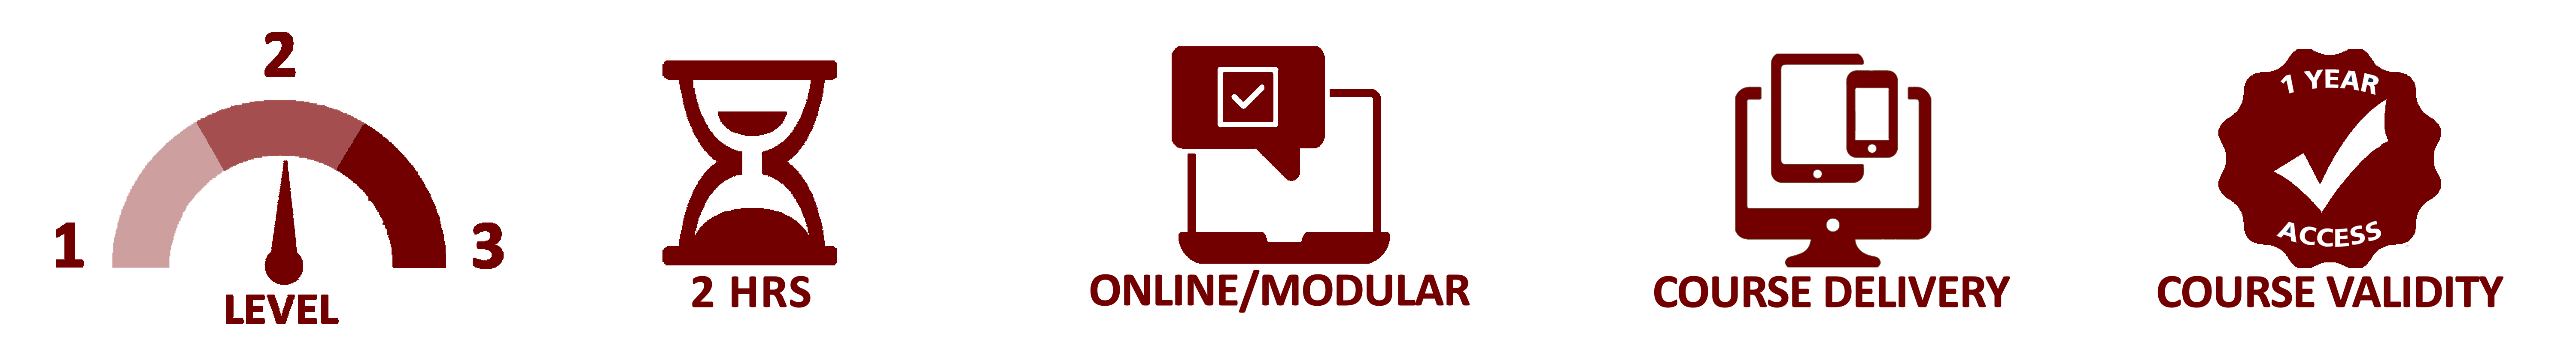 Donning and Doffing PPE for Care Workers - Online Learning Courses - E-Learning Courses - Mandatory Compliance UK-